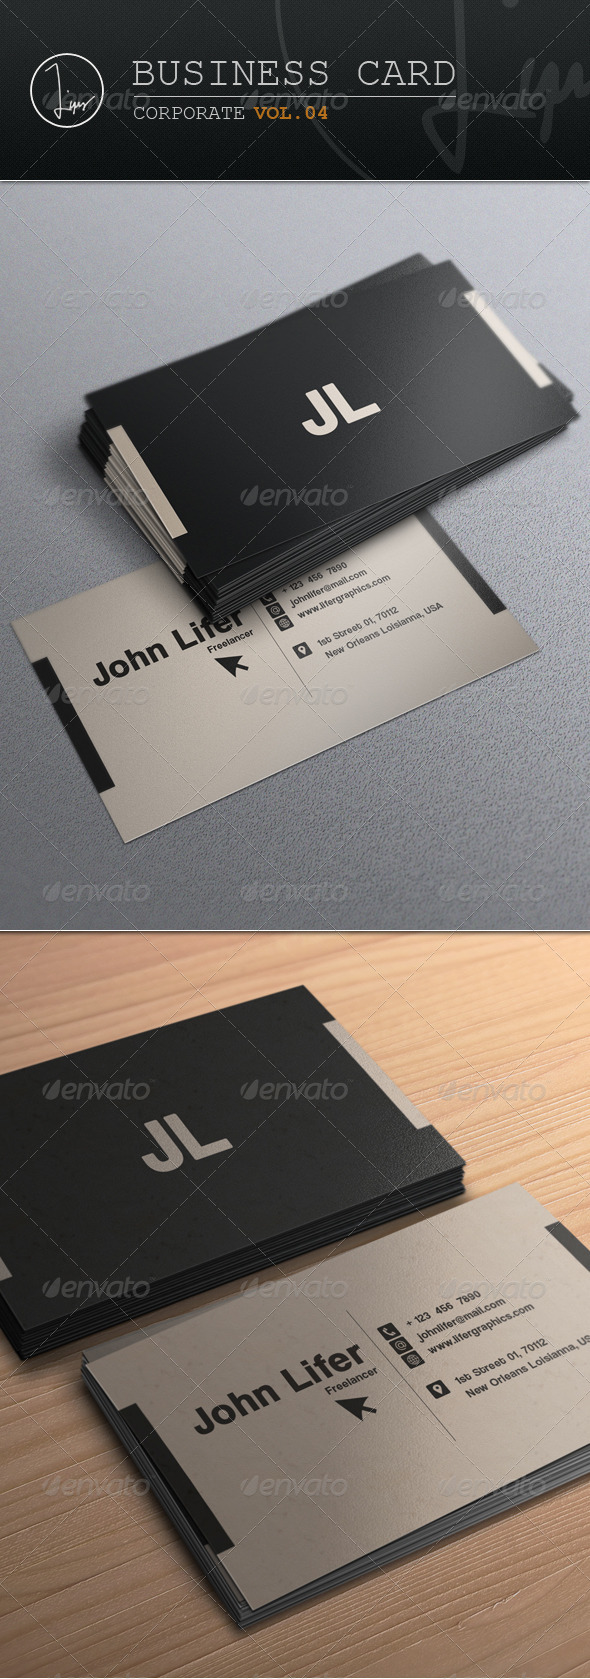 Business Card / Corporate Vol.04 - Corporate Business Cards